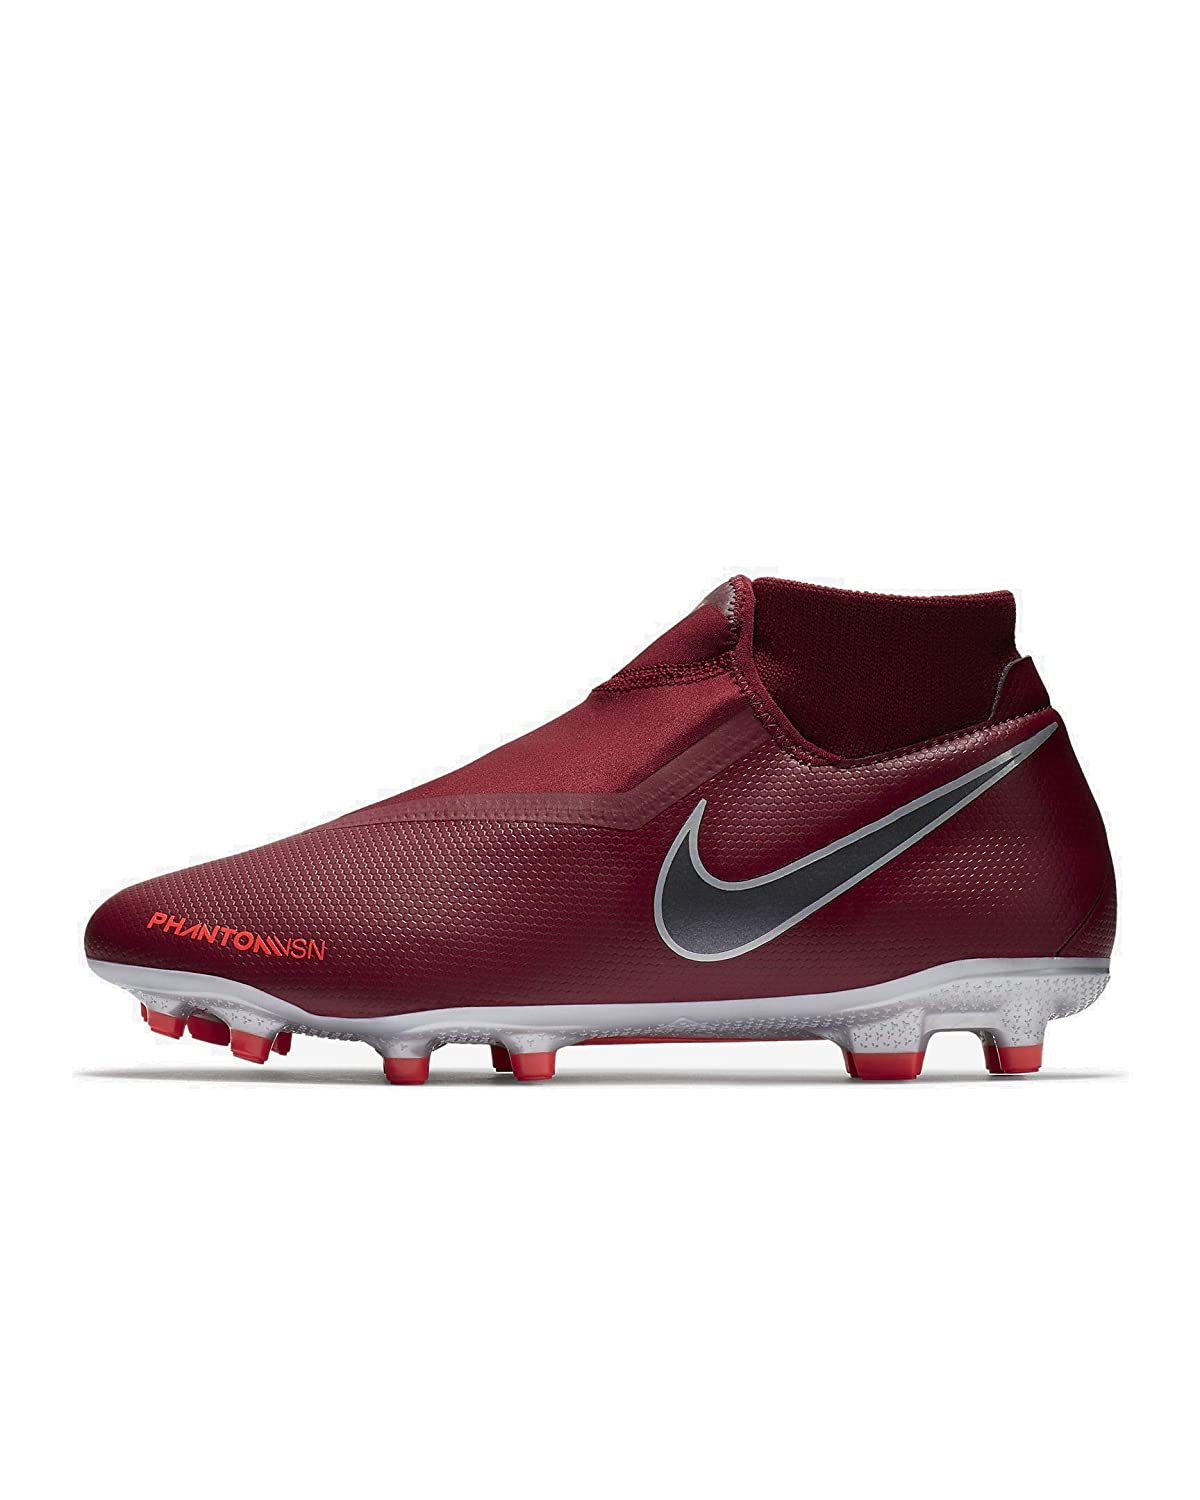 NIKE Phantom Vision Academy Men